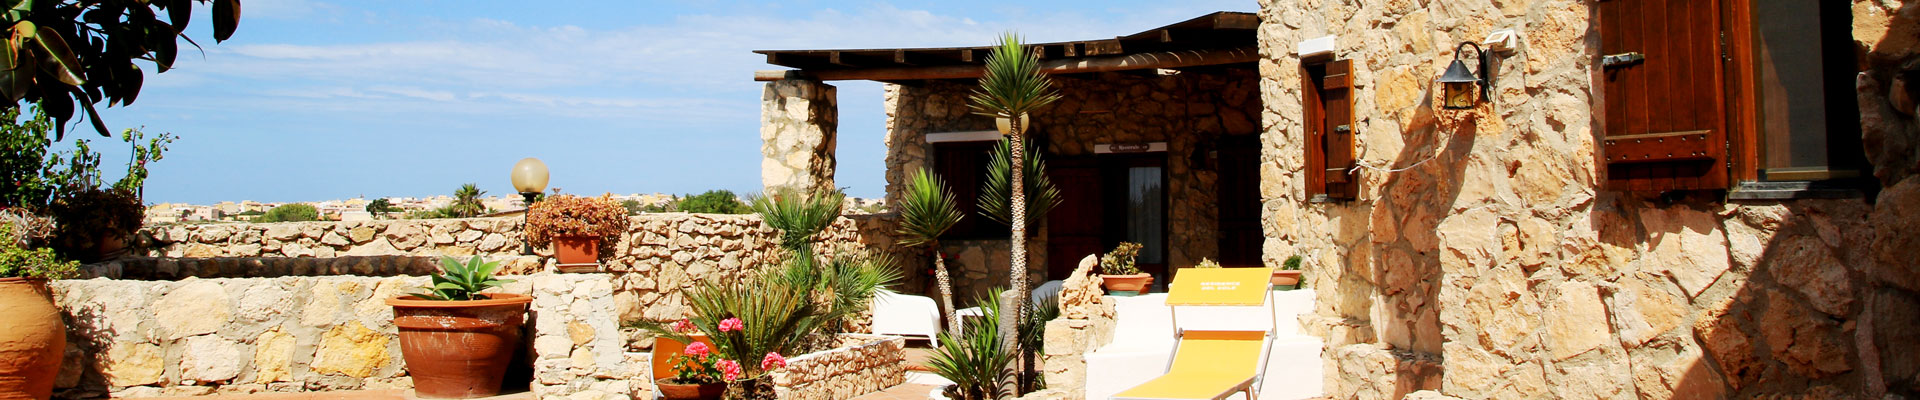 006 - Residence del Sole Lampedusa